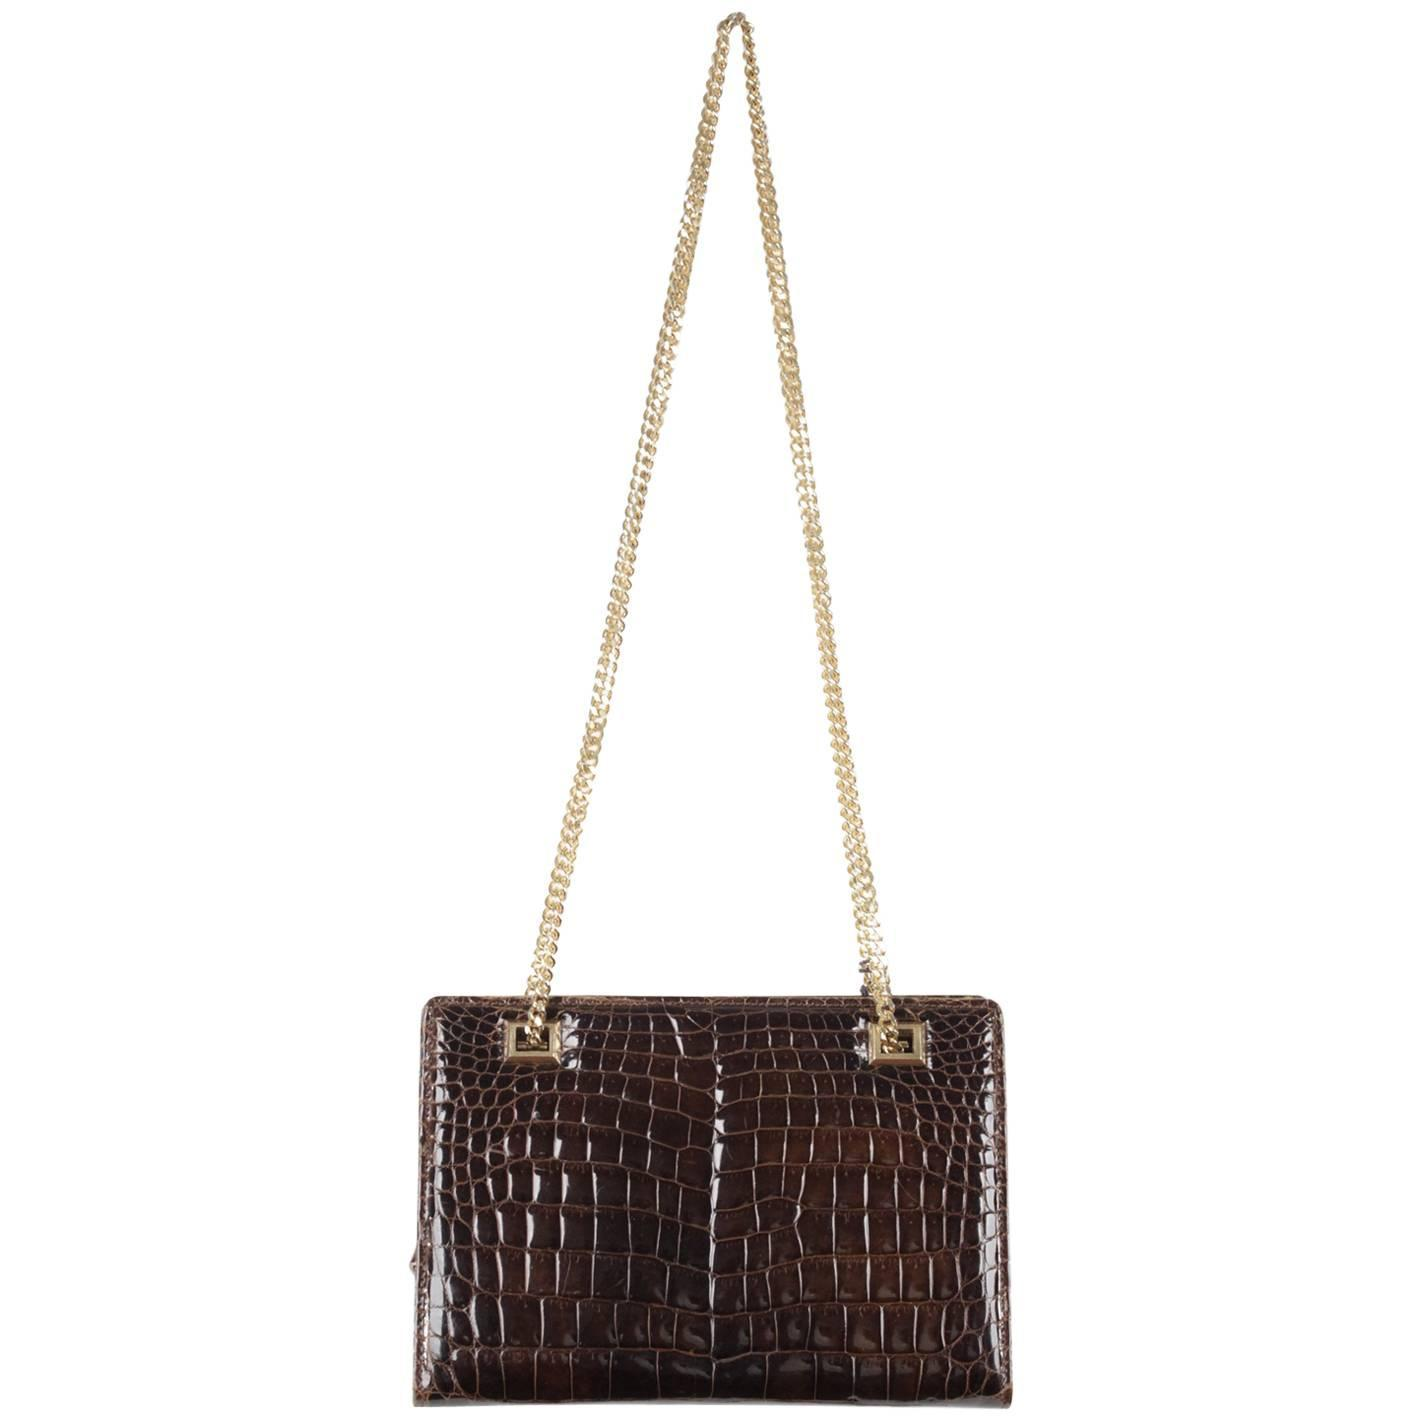 3915d13759fa GUCCI VINTAGE Brown CROCODILE Leather SHOULDER BAG w/ Chain Straps For Sale  at 1stdibs